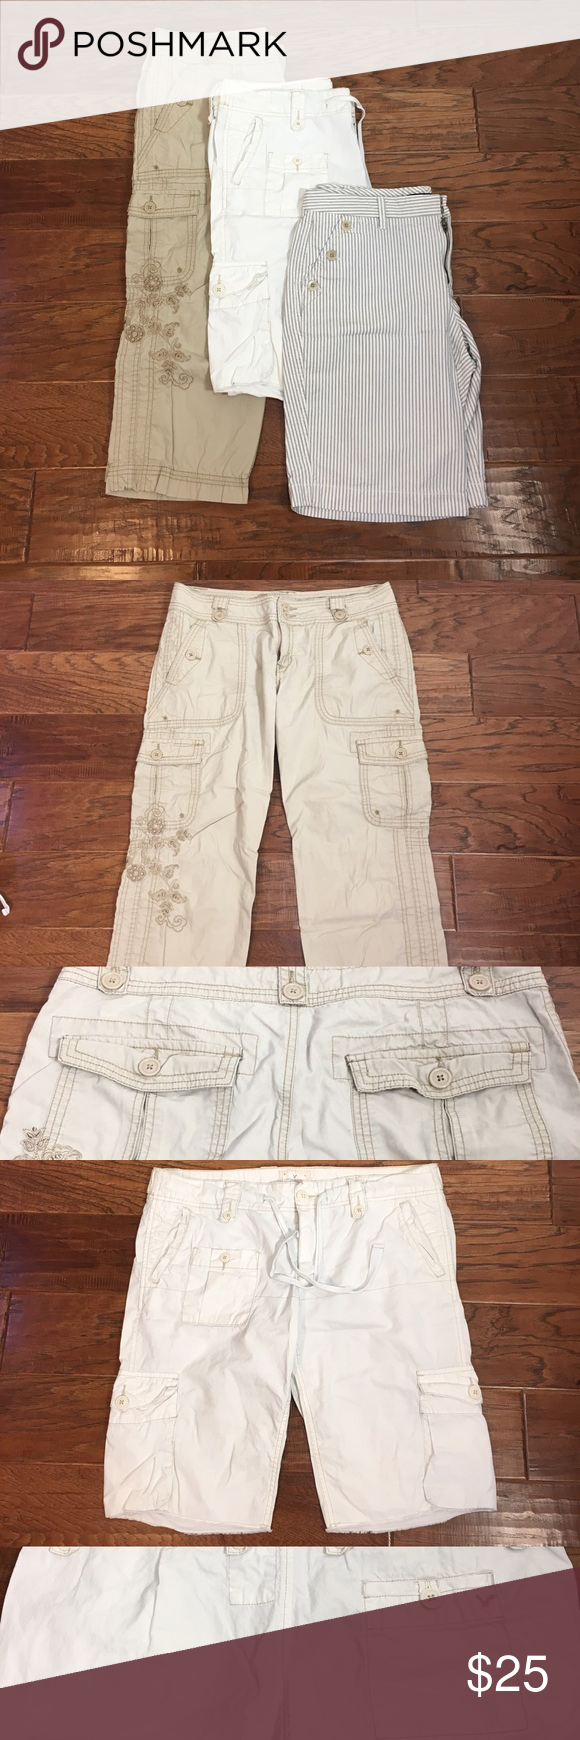 Bundle of 3 size 12 shorts Bundle of three size 12 shorts, all 100% cotton. Capris is from Aeropostale size 11/12. White cargo is from American Eagle Outfitters size 12. Stripe shorts is from Gap size 12. EUC. Shorts